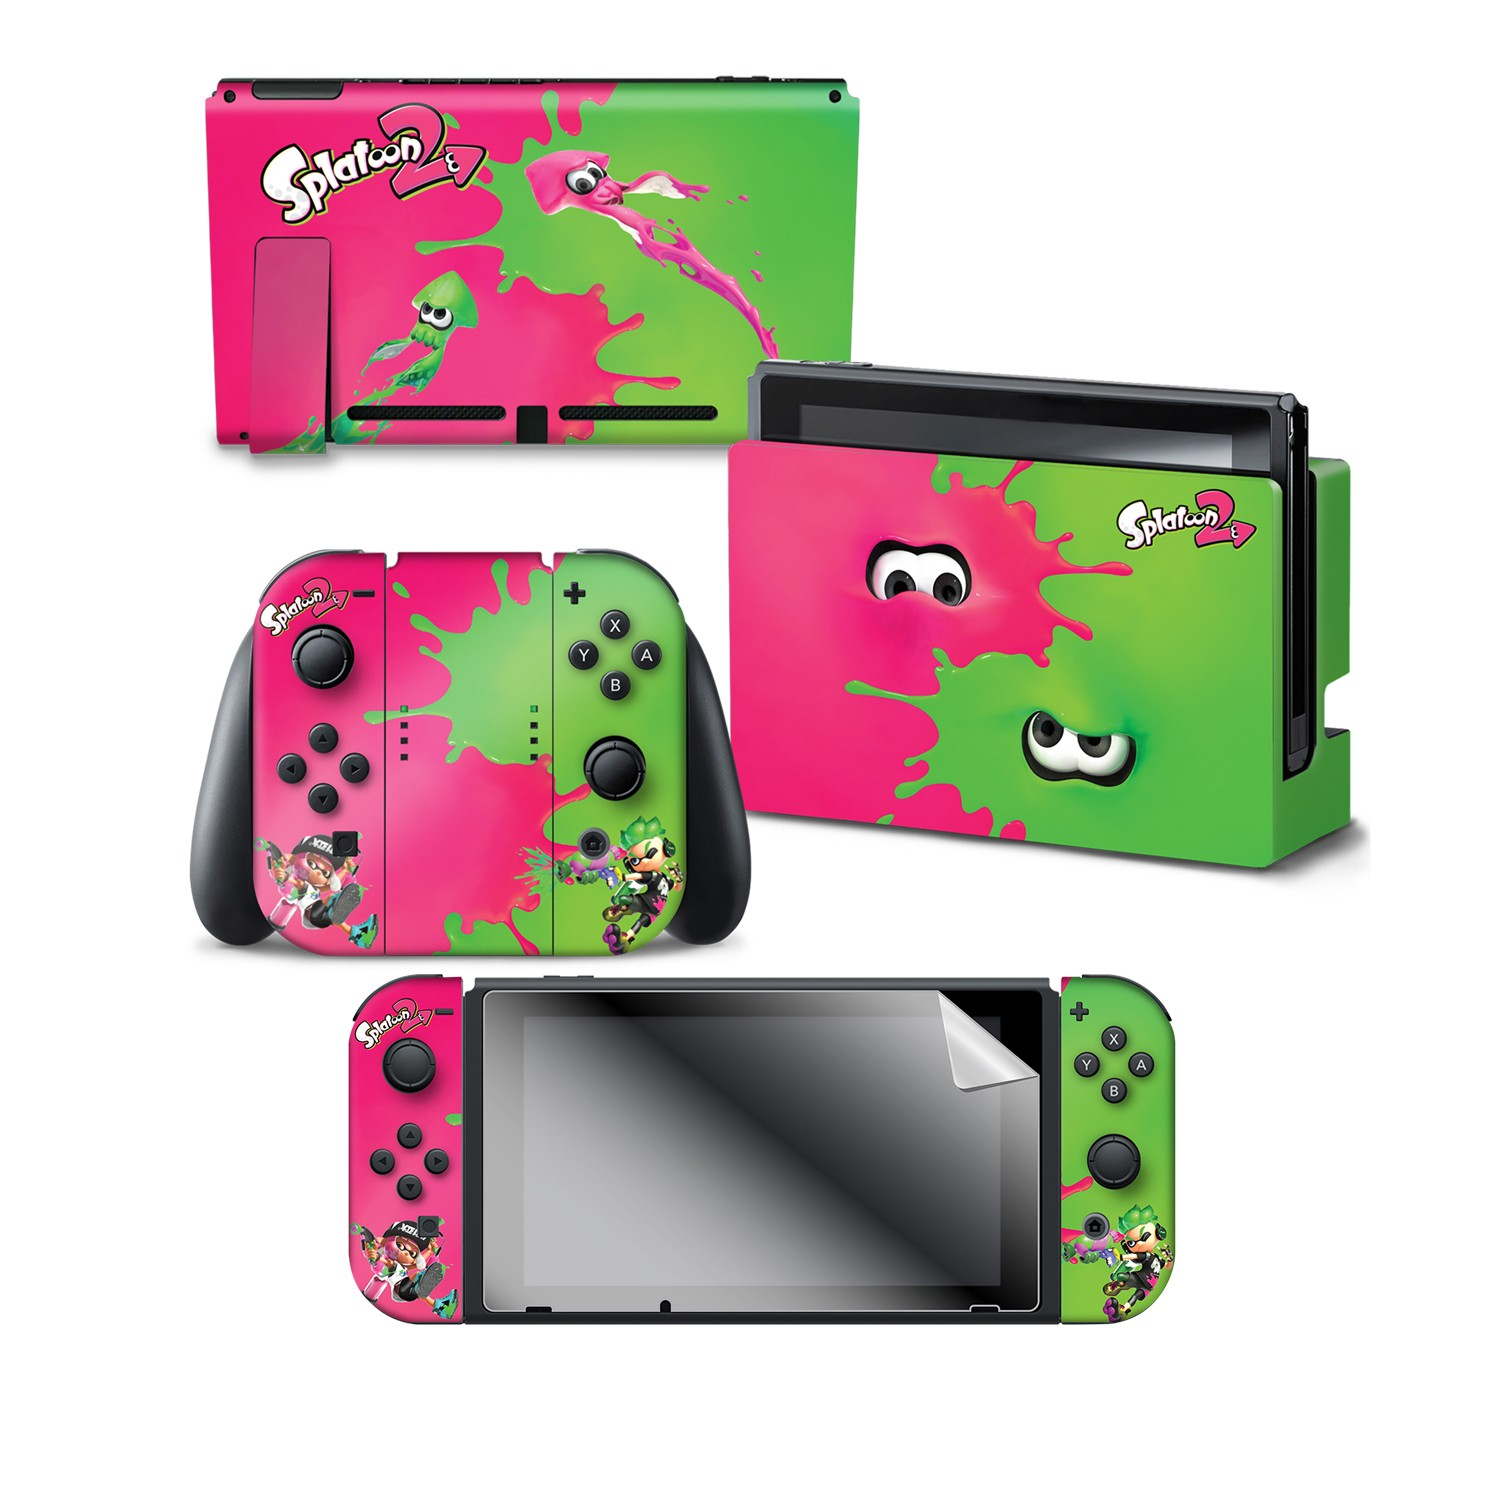 "Splatoon 2™ ""Pink Vs Green""  Nintendo Switch™ Console skin + Dock Skin + Joy-Con™ skin +  Joy-Con™ Grip Skin + Screen Protector Bundle Assortment"